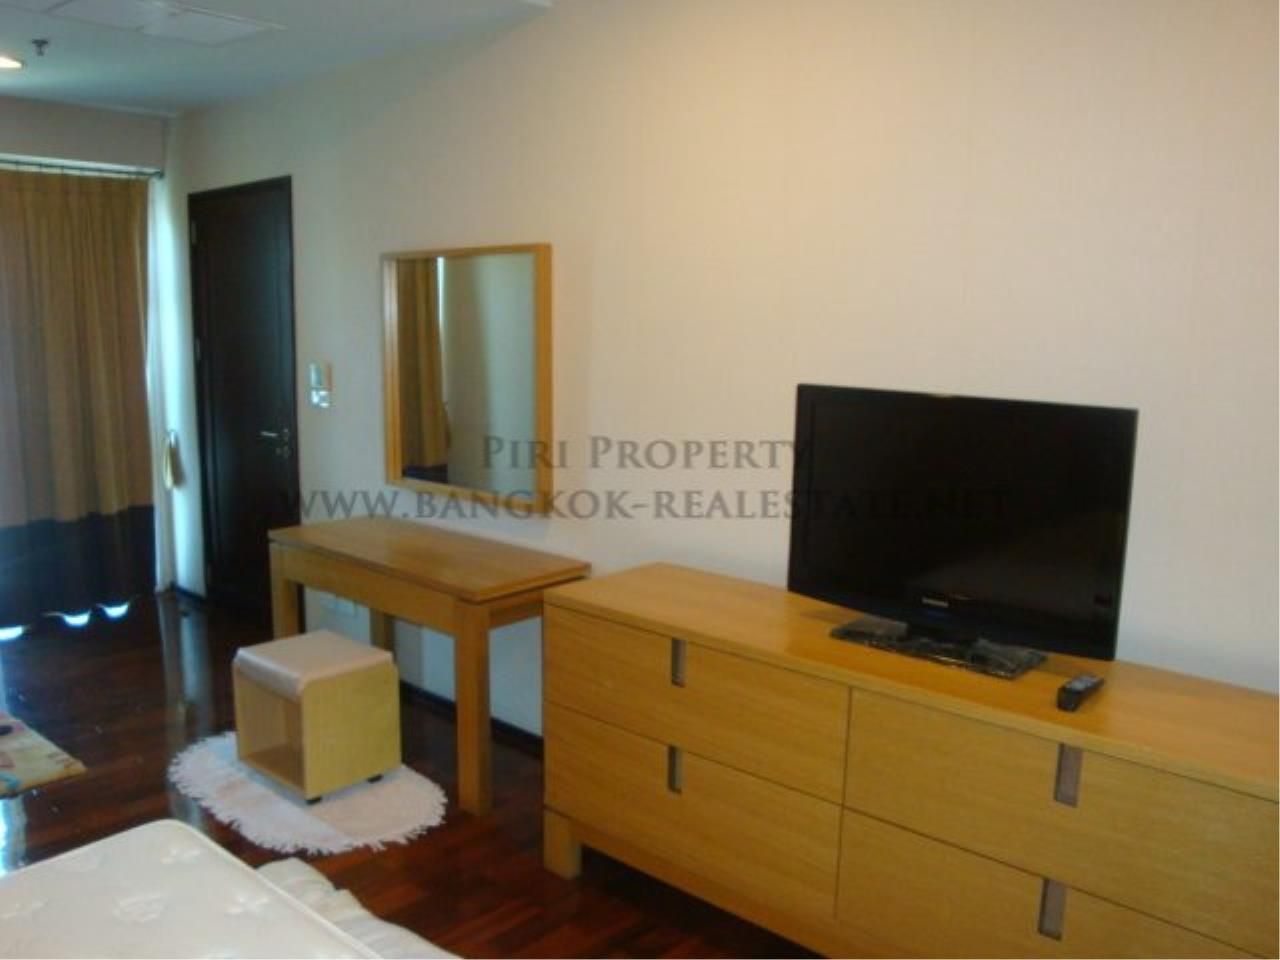 Piri Property Agency's Spacious One Bedroom Condo in Thonglor with 78 SQM 5